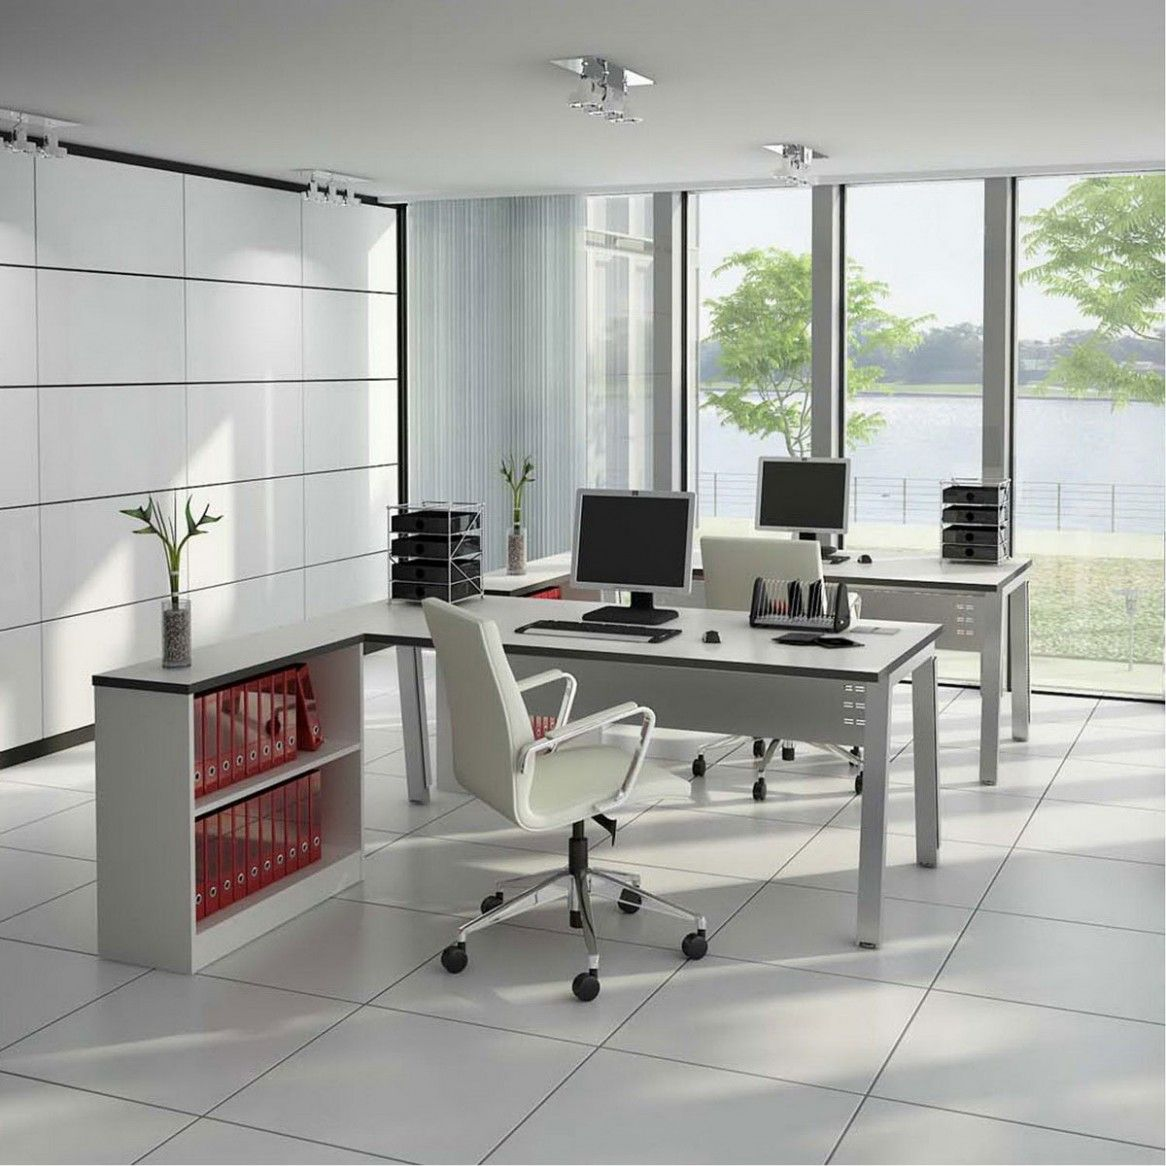 Interior: Incredible Office Interior Design Ideas 2013, Awesome White Themed Home Office Interior Design with L-Shaped Desk and Wheeled Arm ...